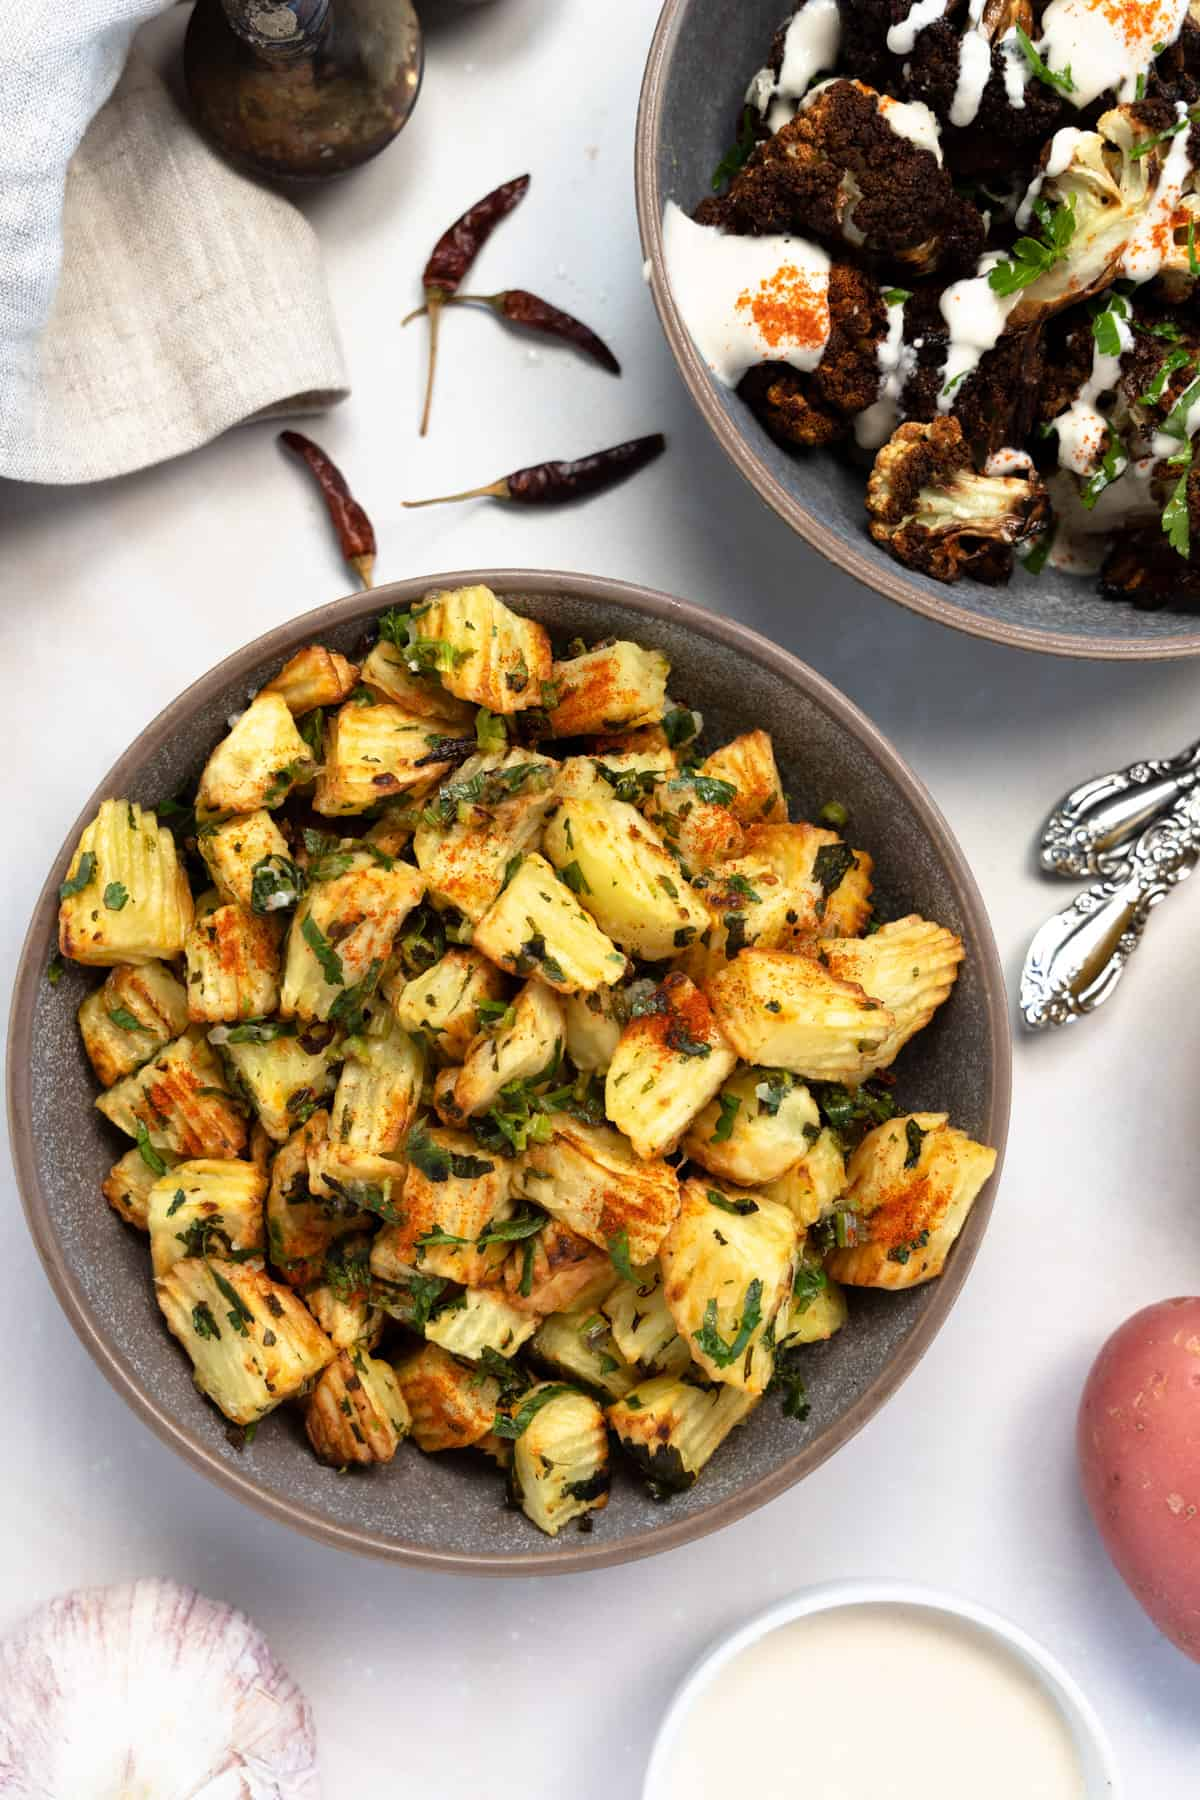 lebanese spicy potatoes and air fried cauliflower in two grey plates